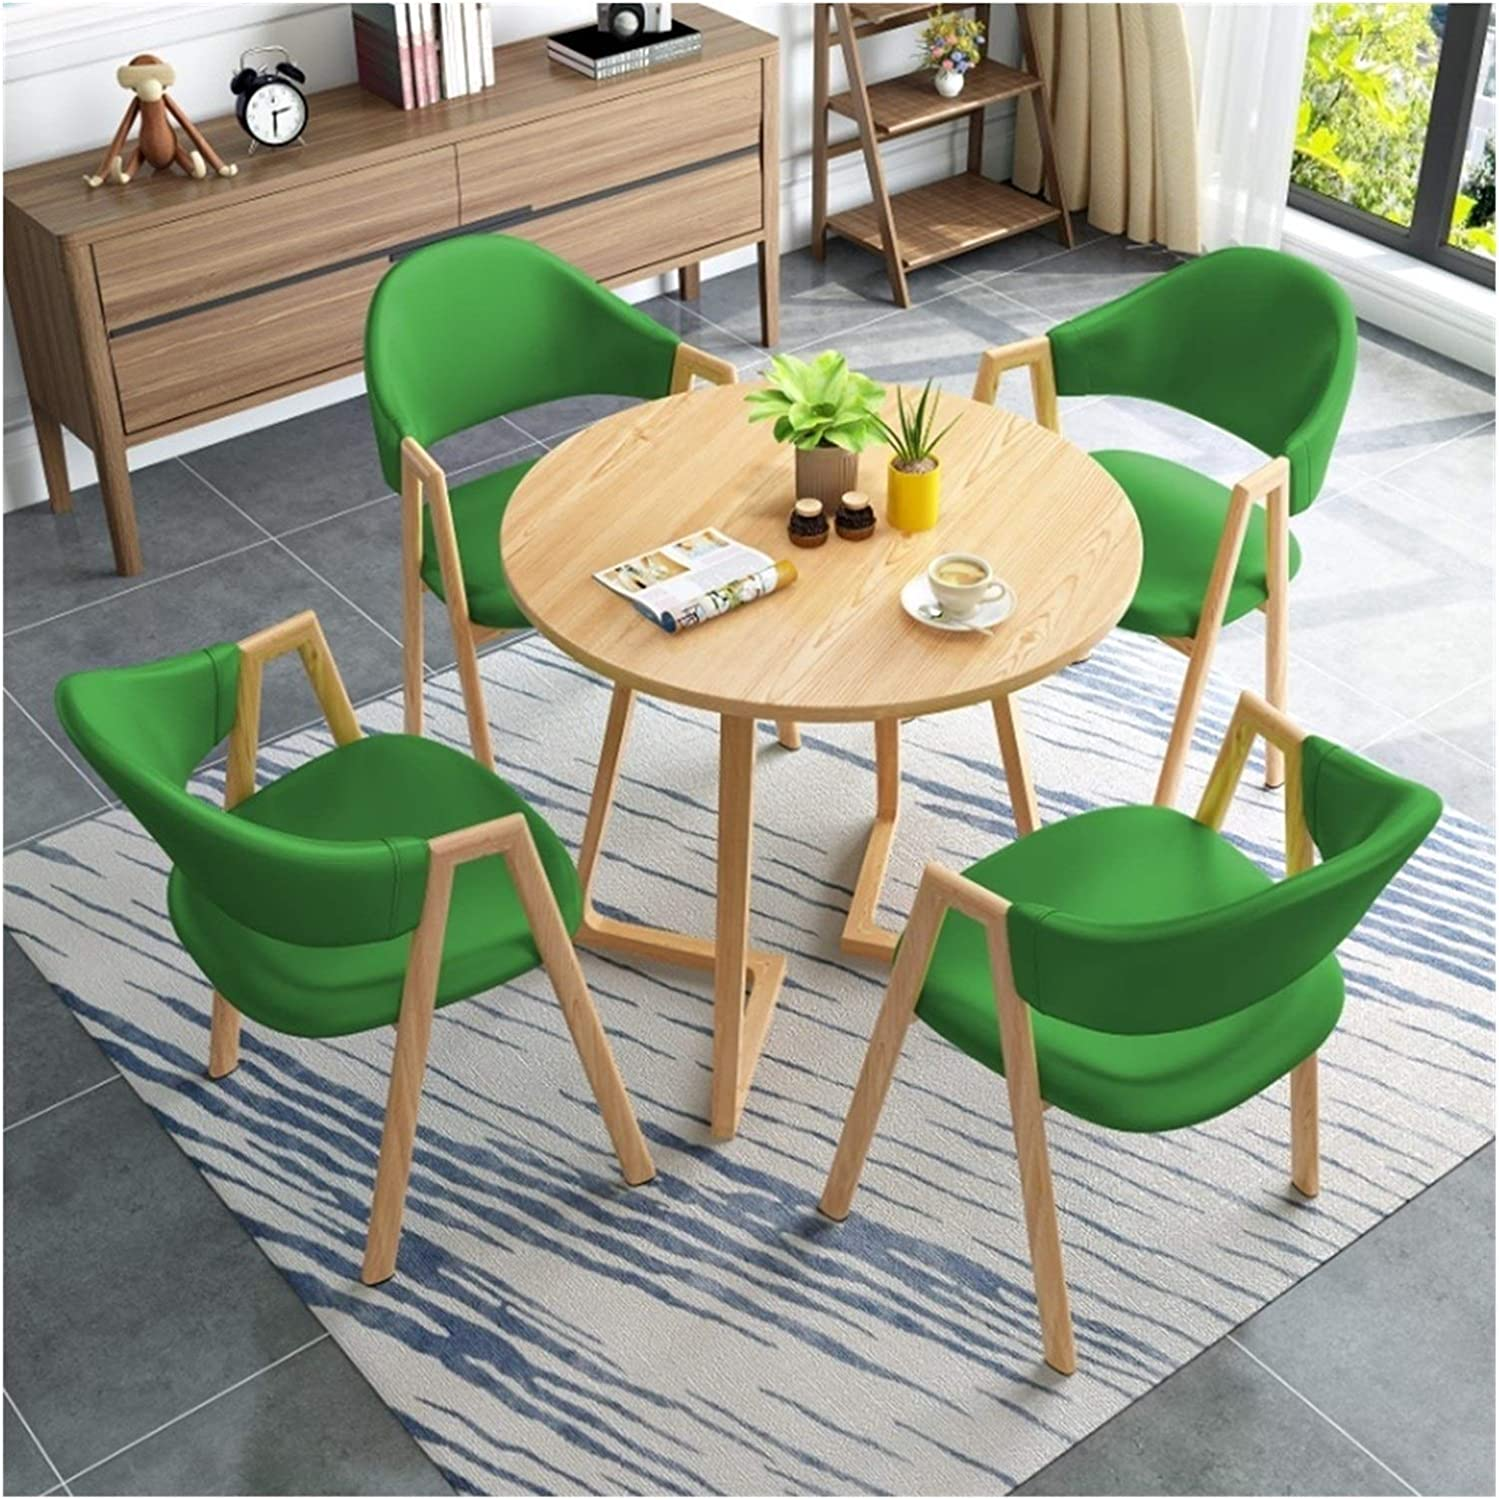 WANGLX Portland Mall Dining Table Set for Kitchen Room Din and Max 84% OFF